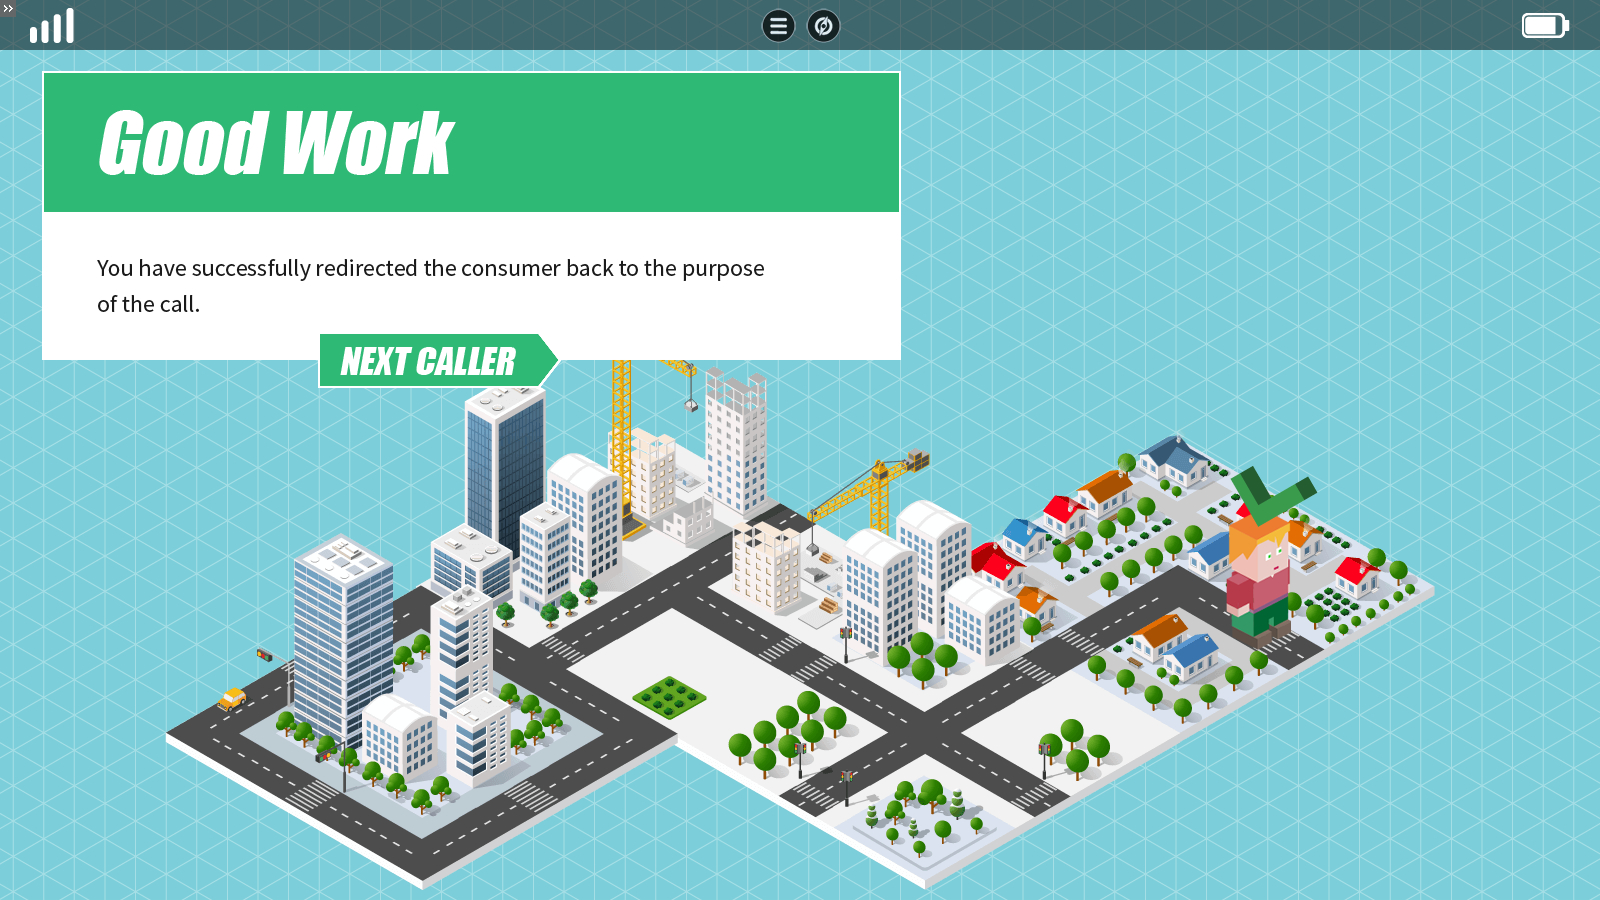 a feedback slide showing the caller reached the correct destination on the isometric map